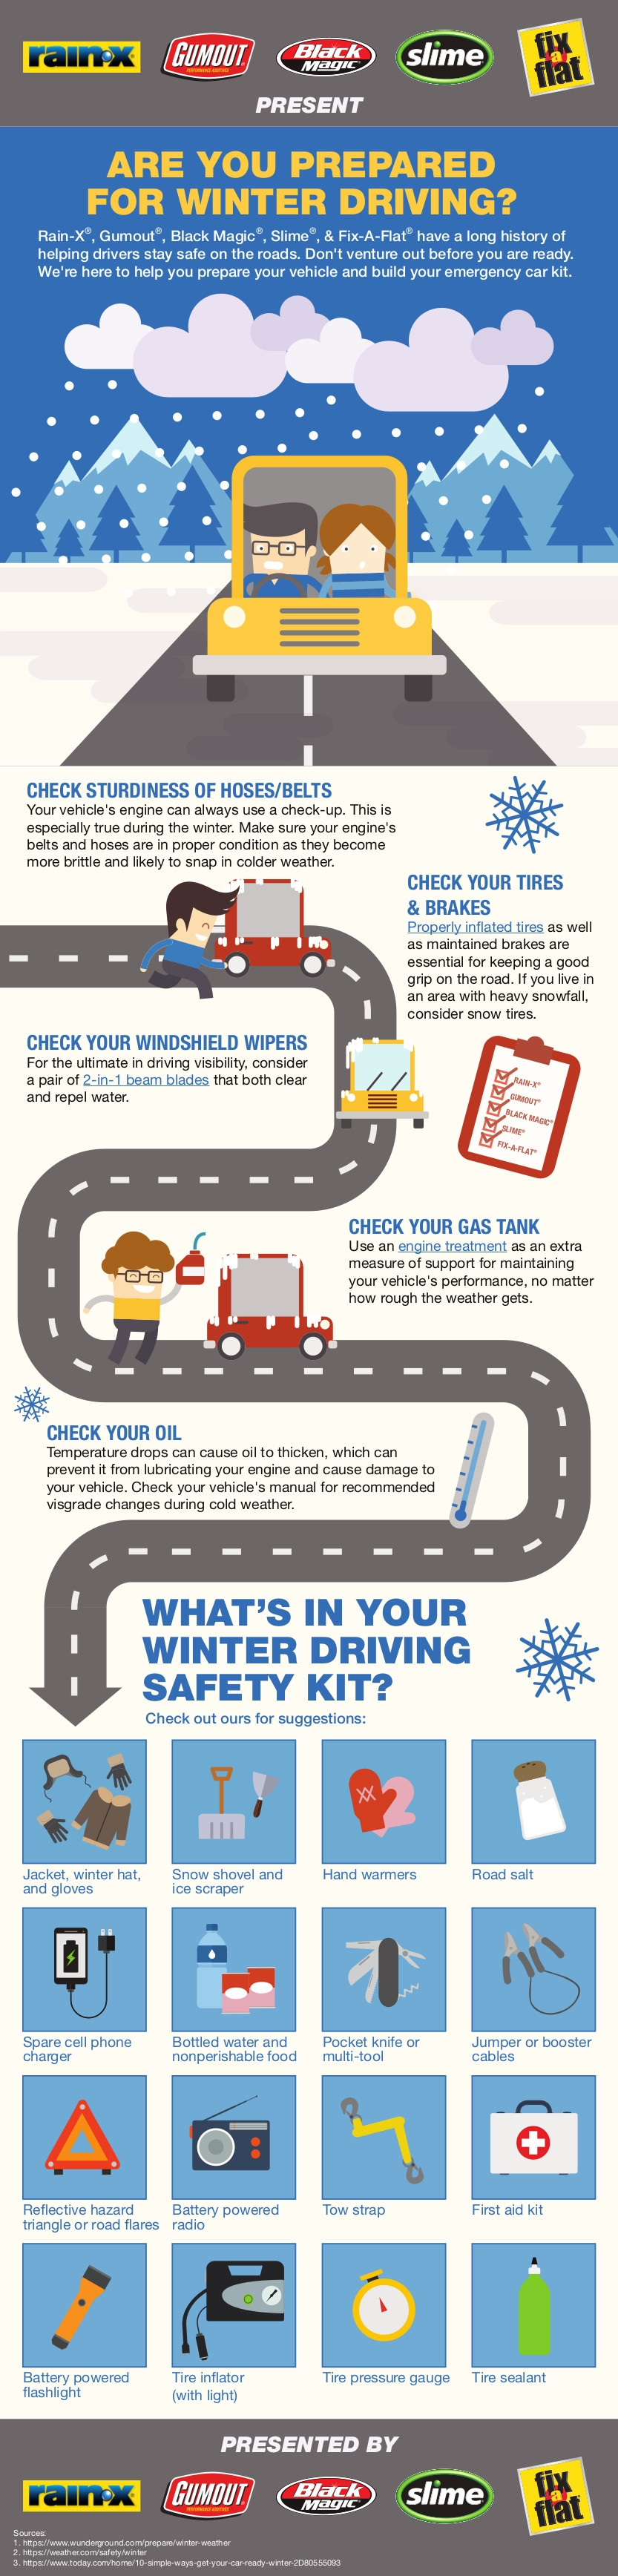 Are You Prepared for Winter Driving Infographic